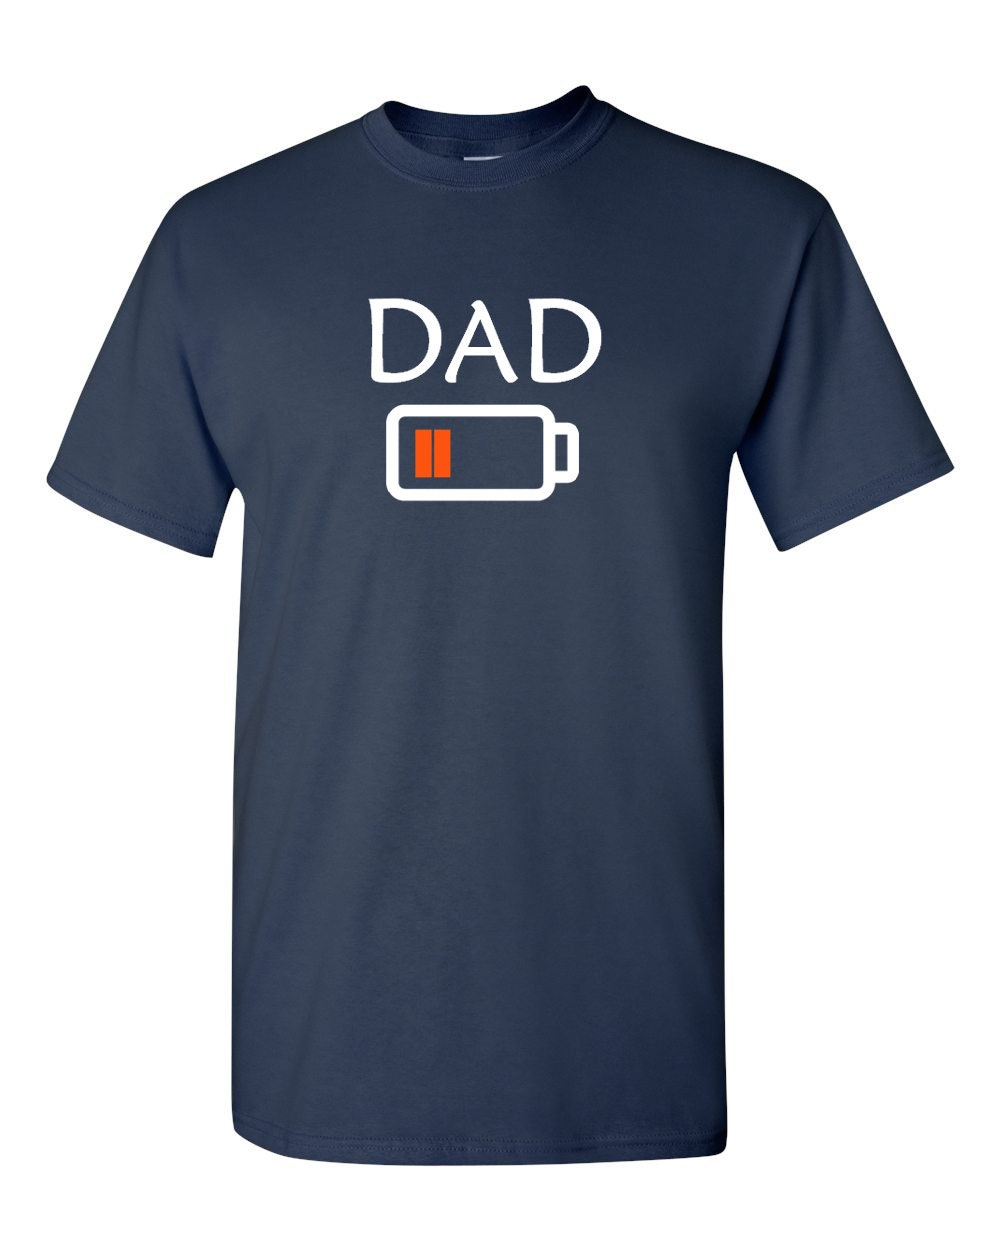 ca37415ca ... Funny Tee - Father's Day - Birthday Present. gallery photo gallery  photo gallery photo gallery photo gallery photo gallery photo ...